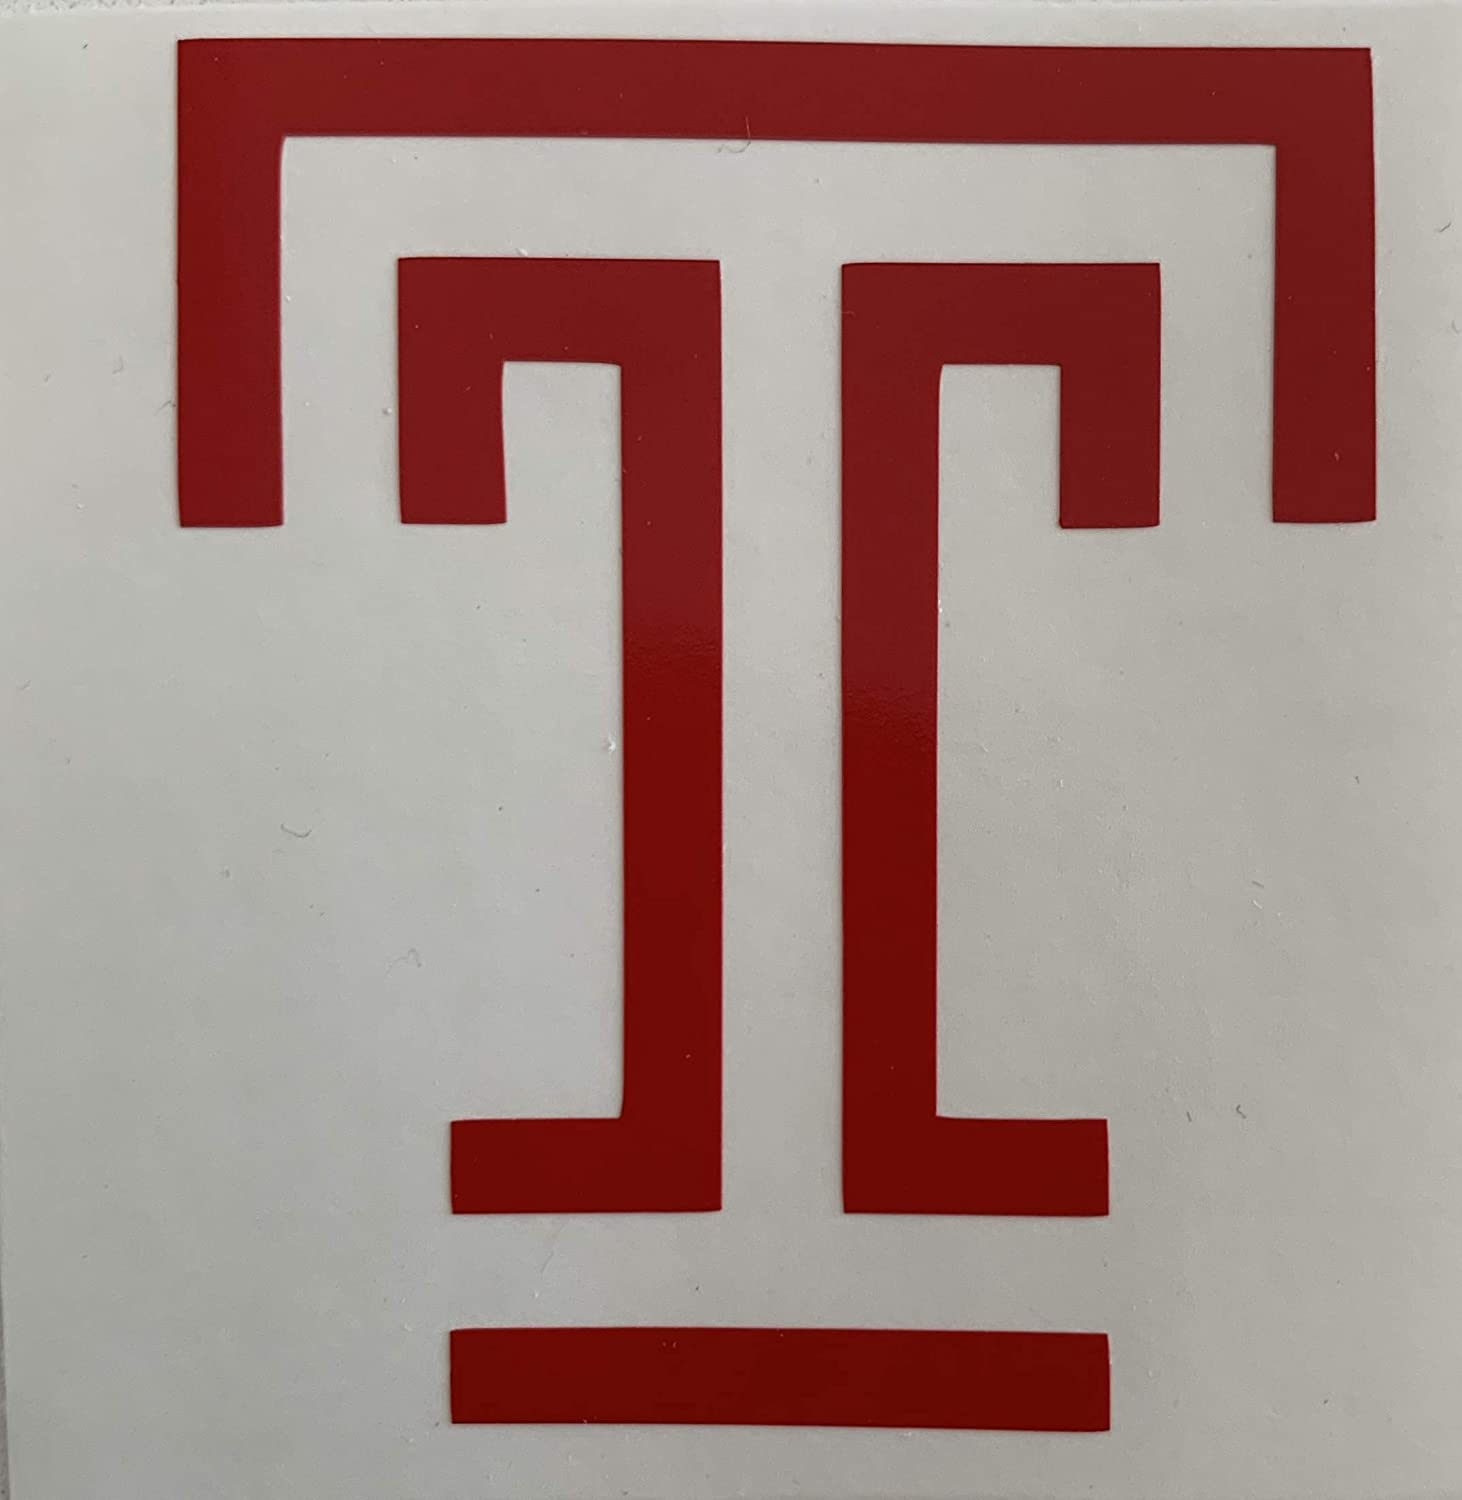 Perfect for cars Temple University Vinyl Decal Stickers tumblers computers SAME DAY SHIPPING* Yetis windows and most smooth surfaces 2 Pack